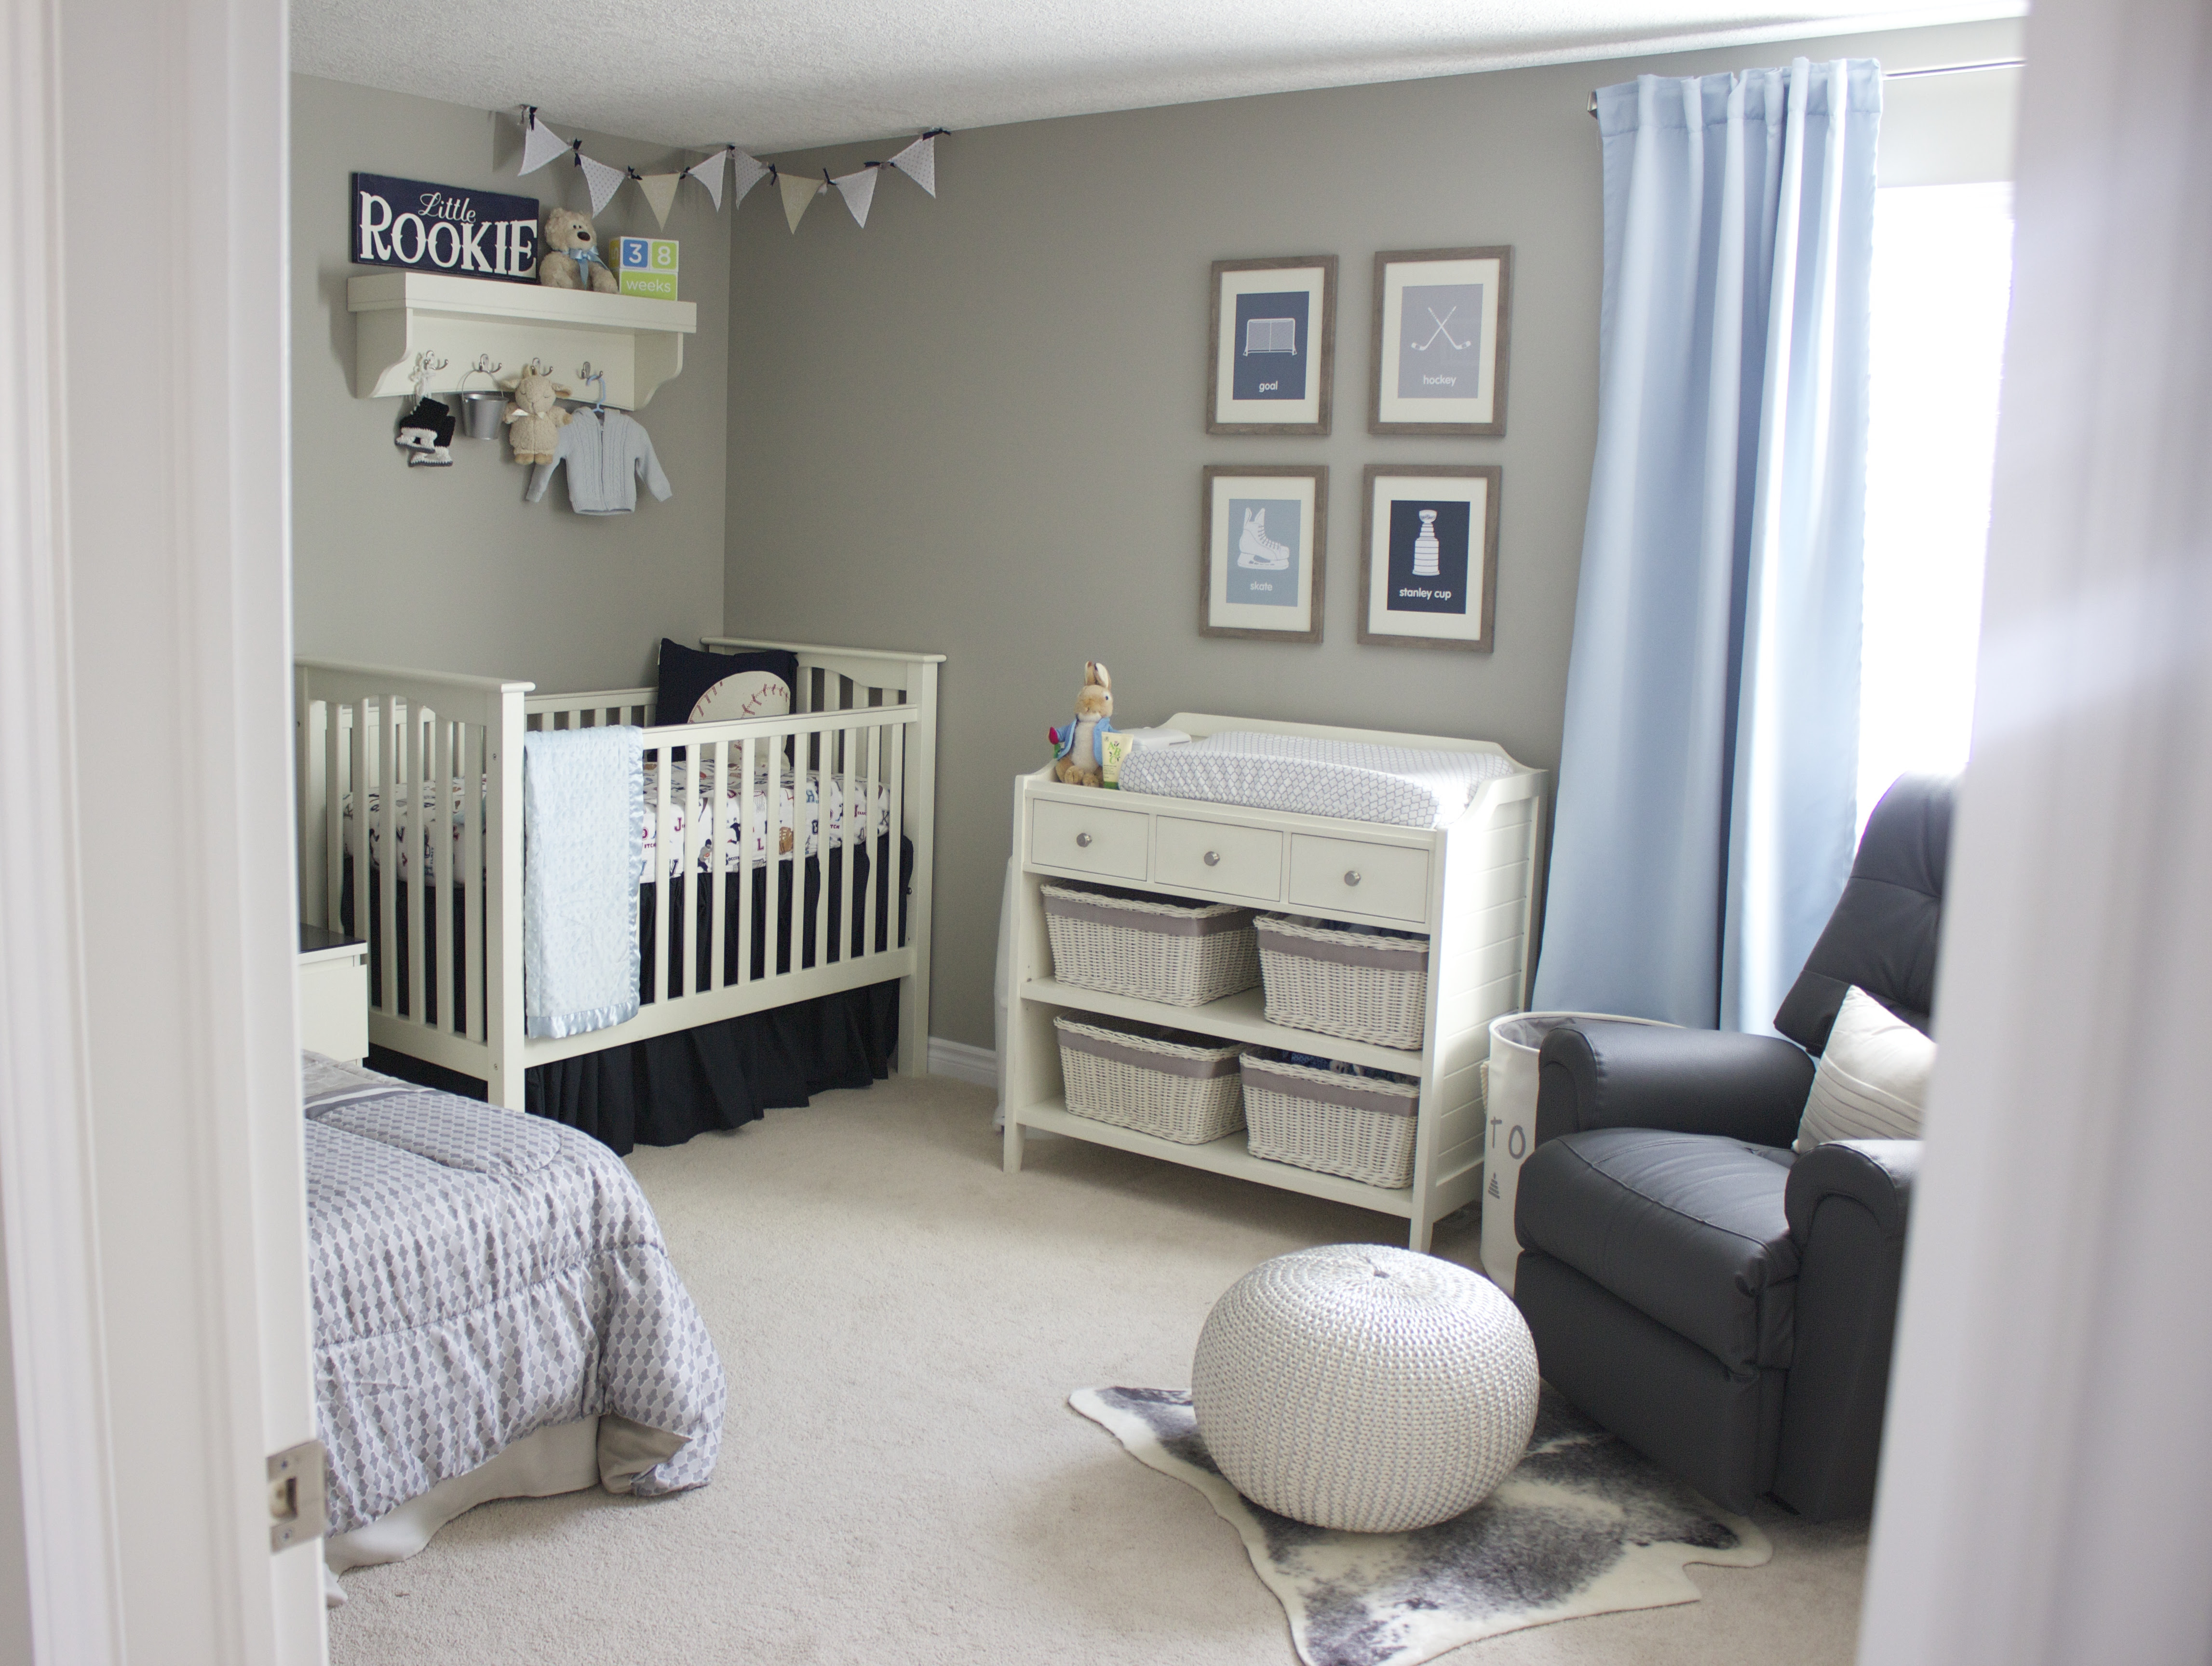 A Blue and Gray Sports Inspired Nursery - Project Nursery